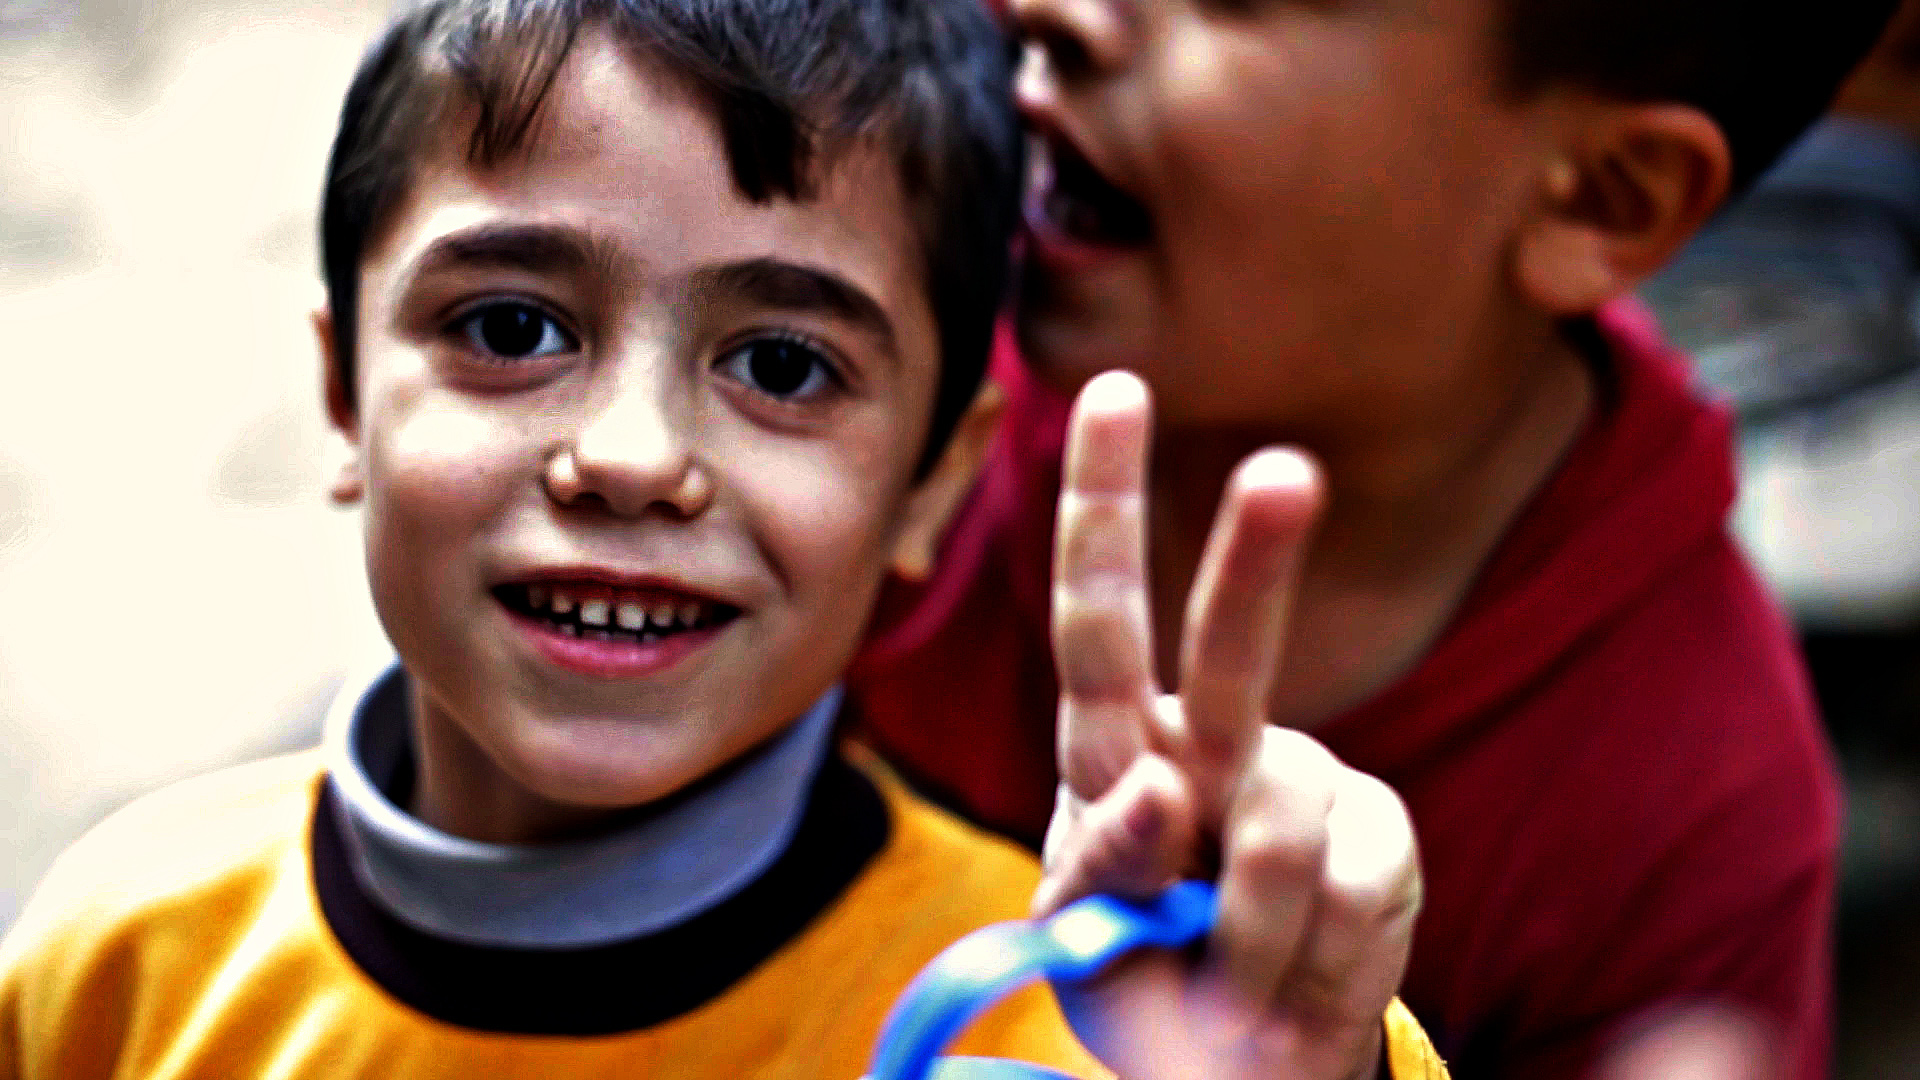 'This is daily life' in Shatila refugee camp -